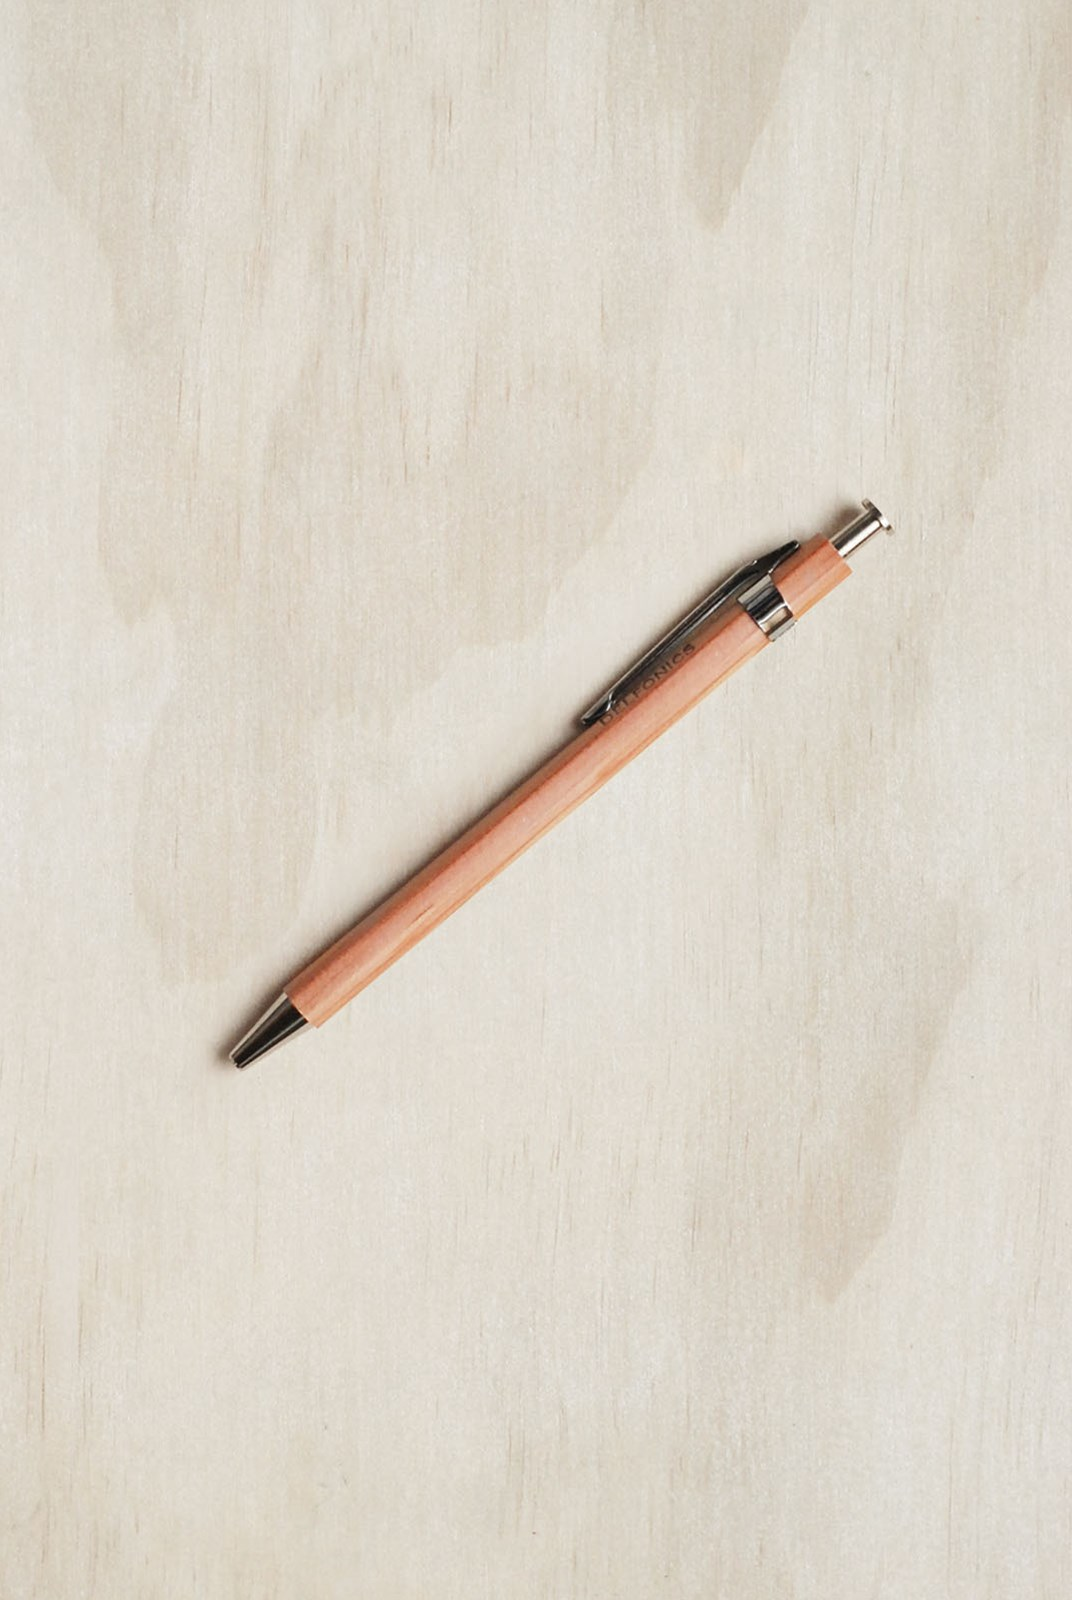 Delfonics - Wooden Ballpoint Pen - Mini Size - Natural